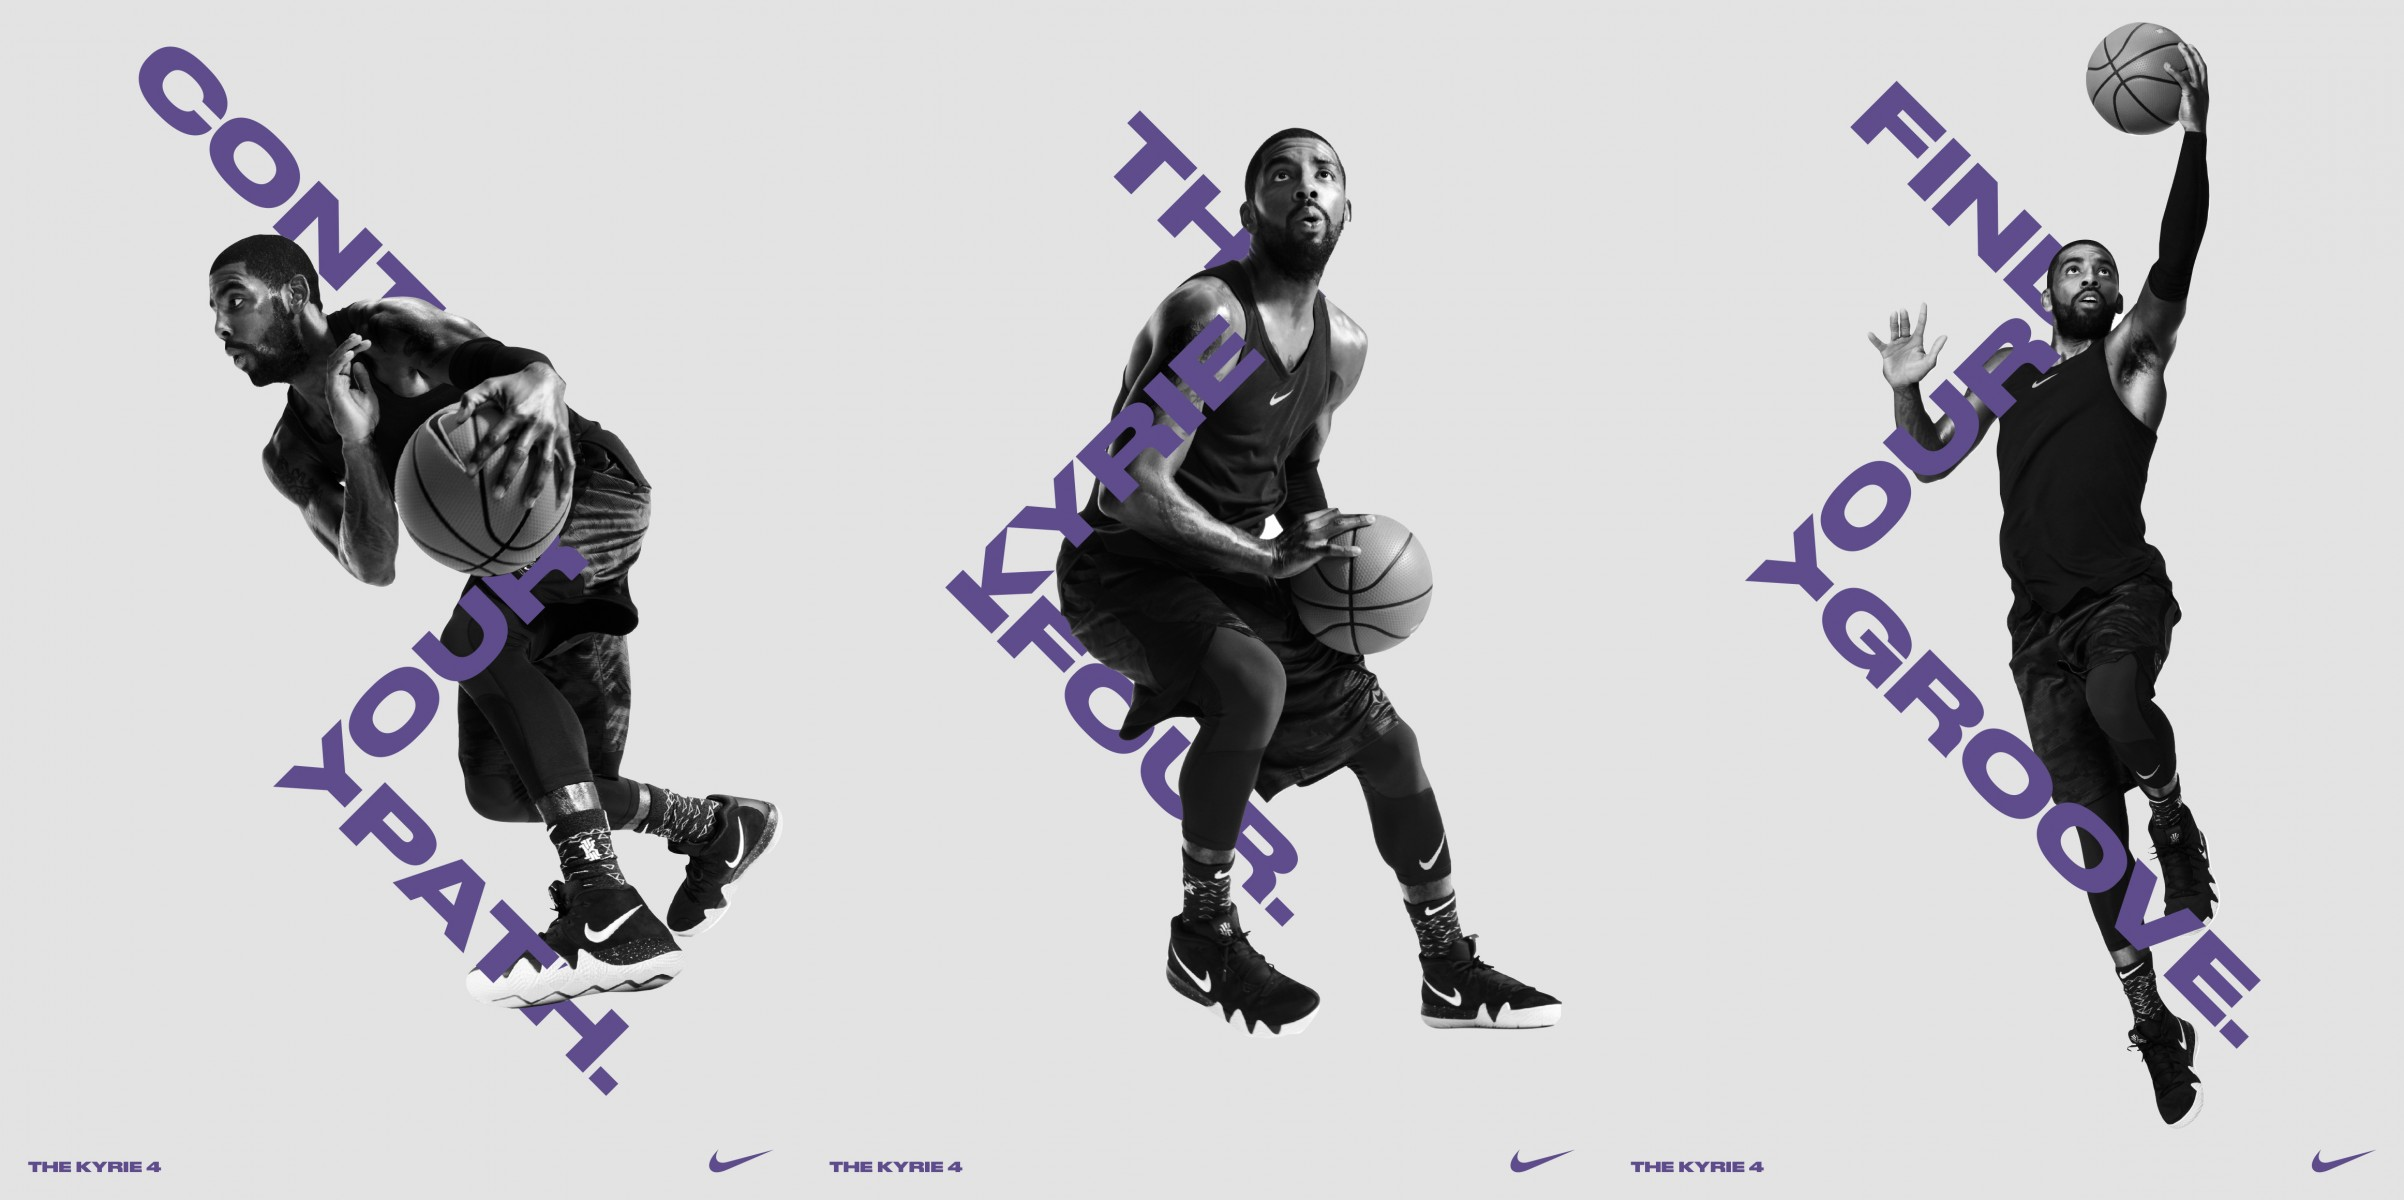 nike kyrie 4 artwork